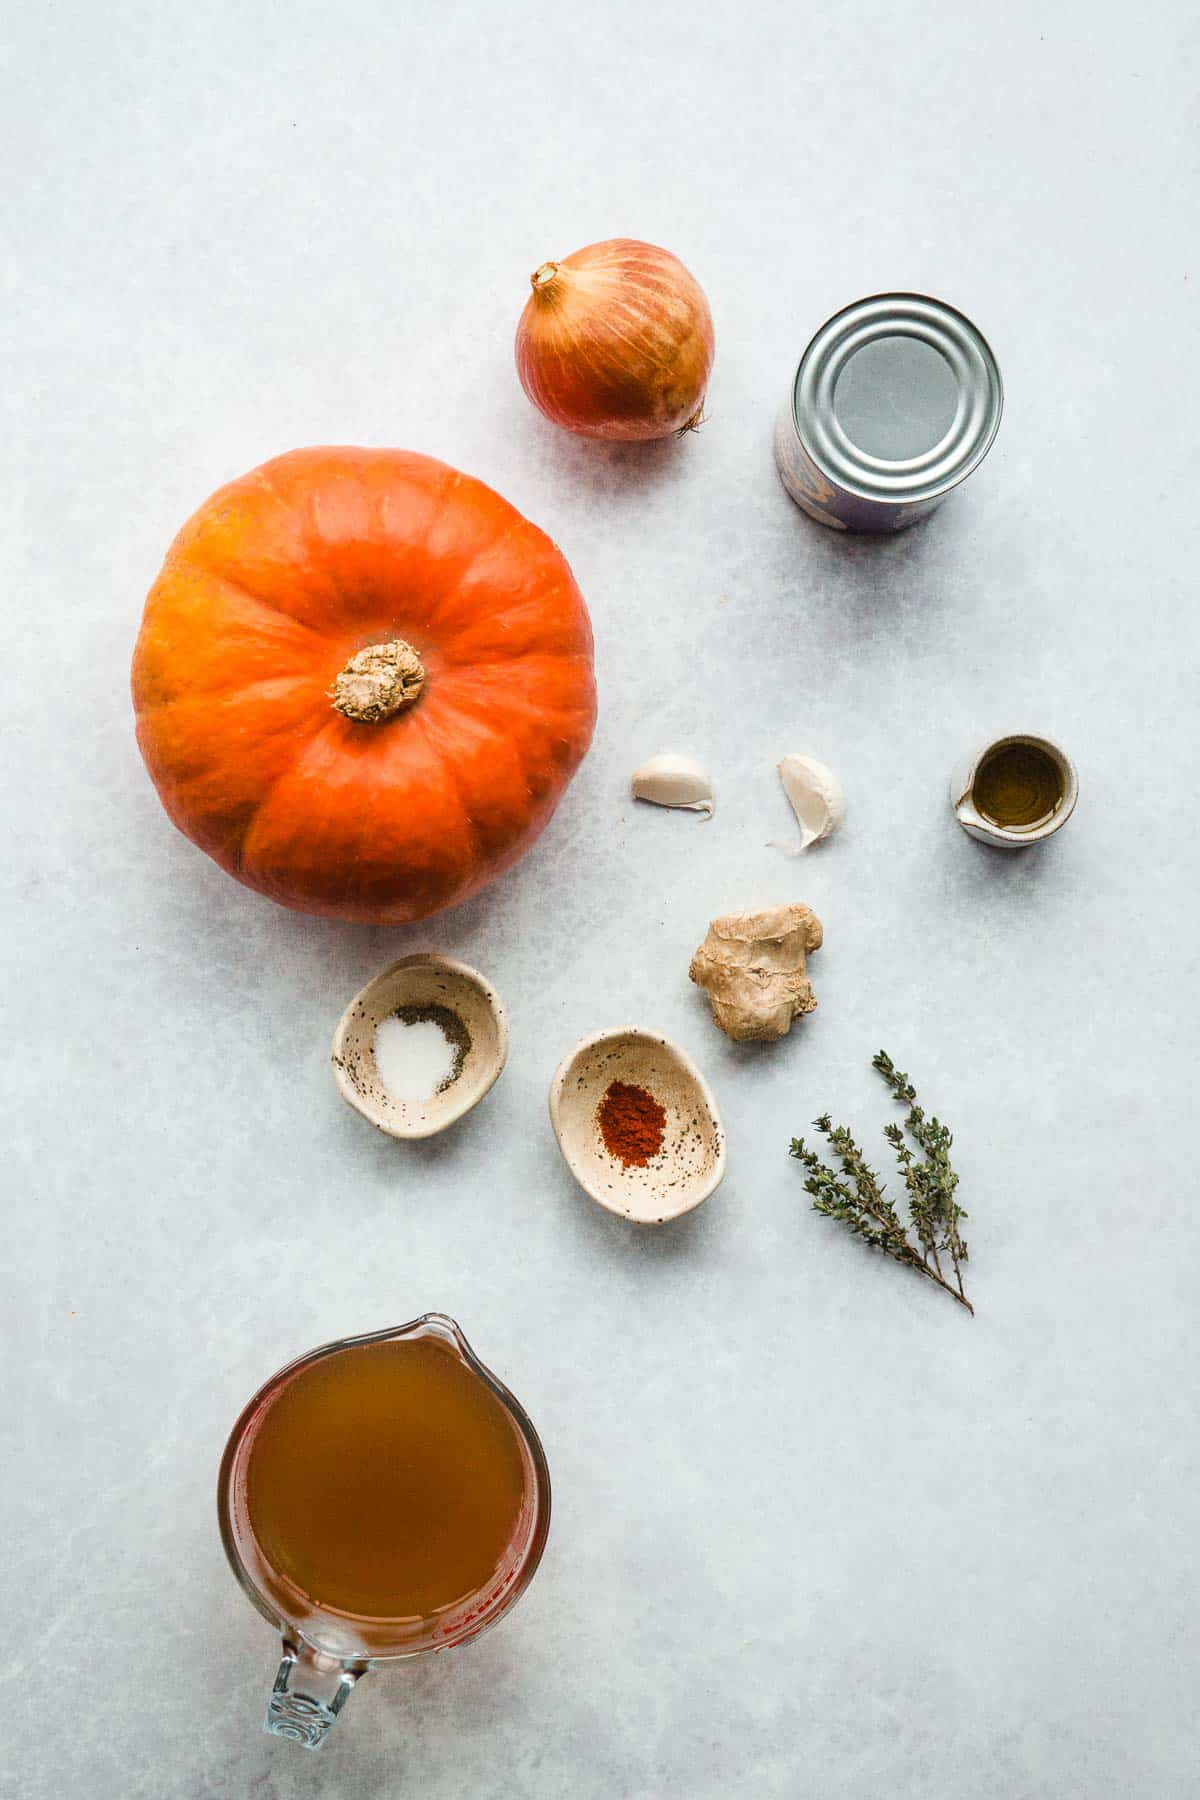 Ingredients needed to make Vegan Pumpkin Soup